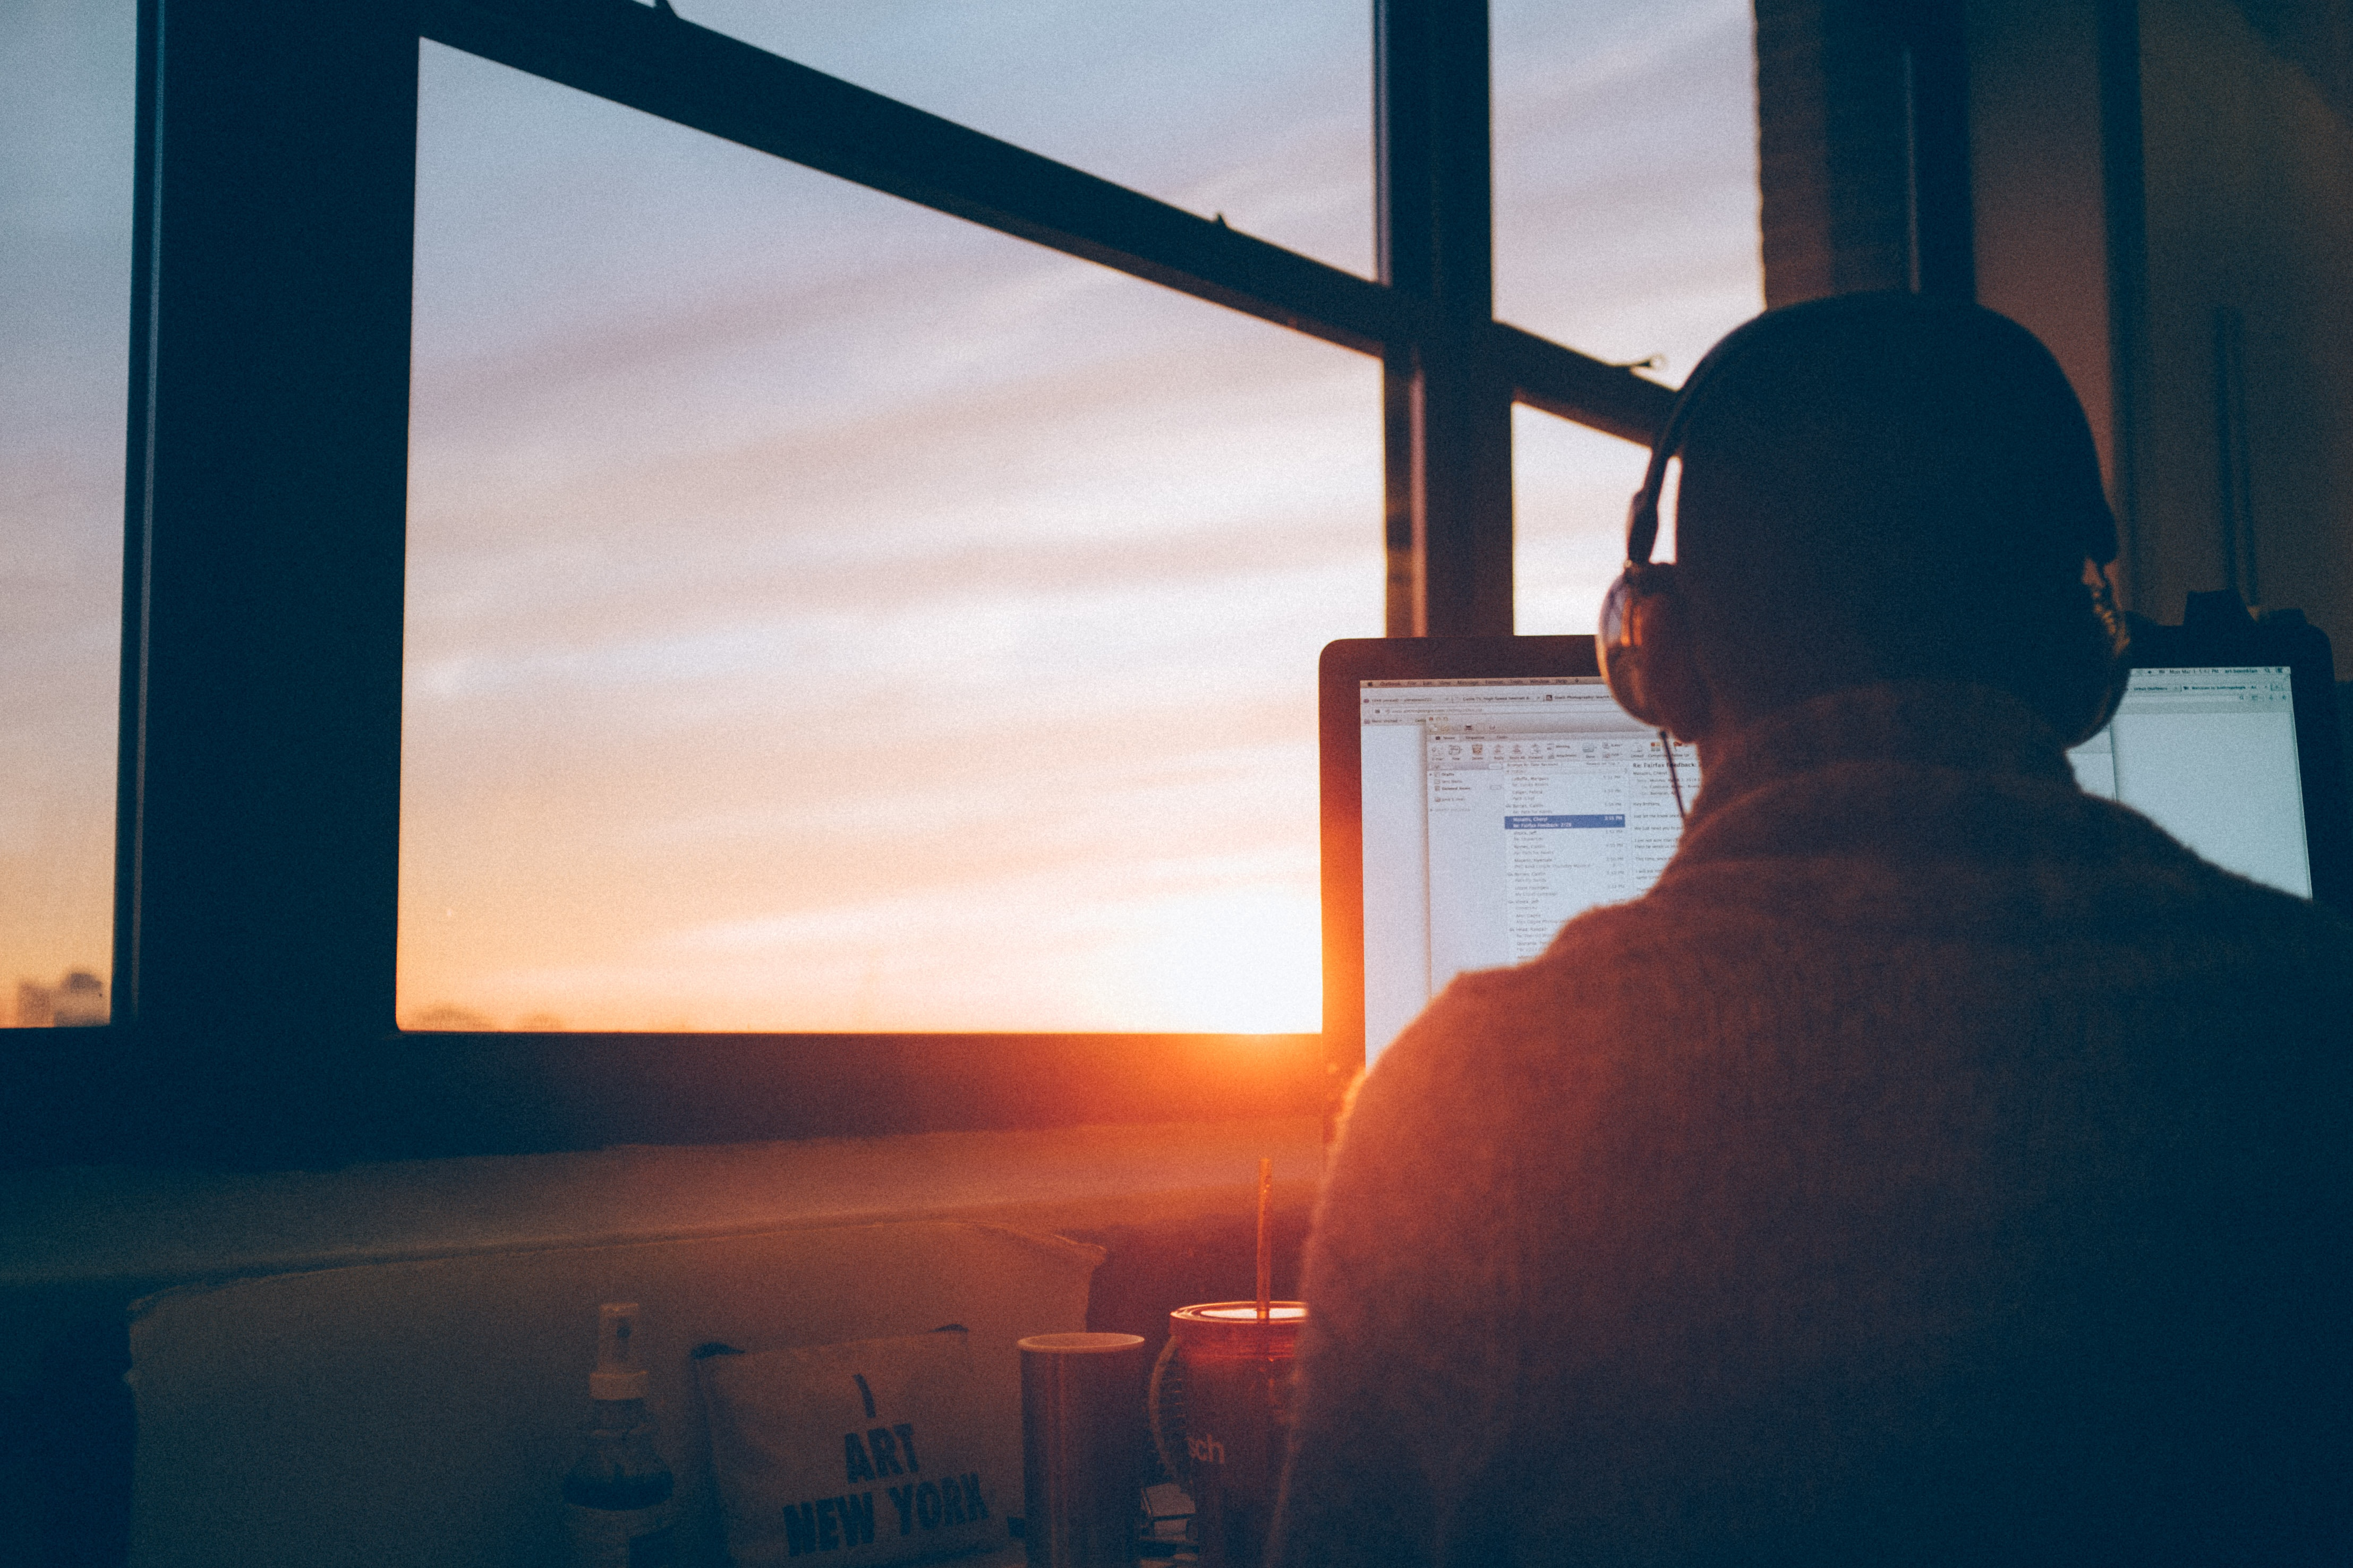 man sitting near window during sunset doing a webinar on his computer